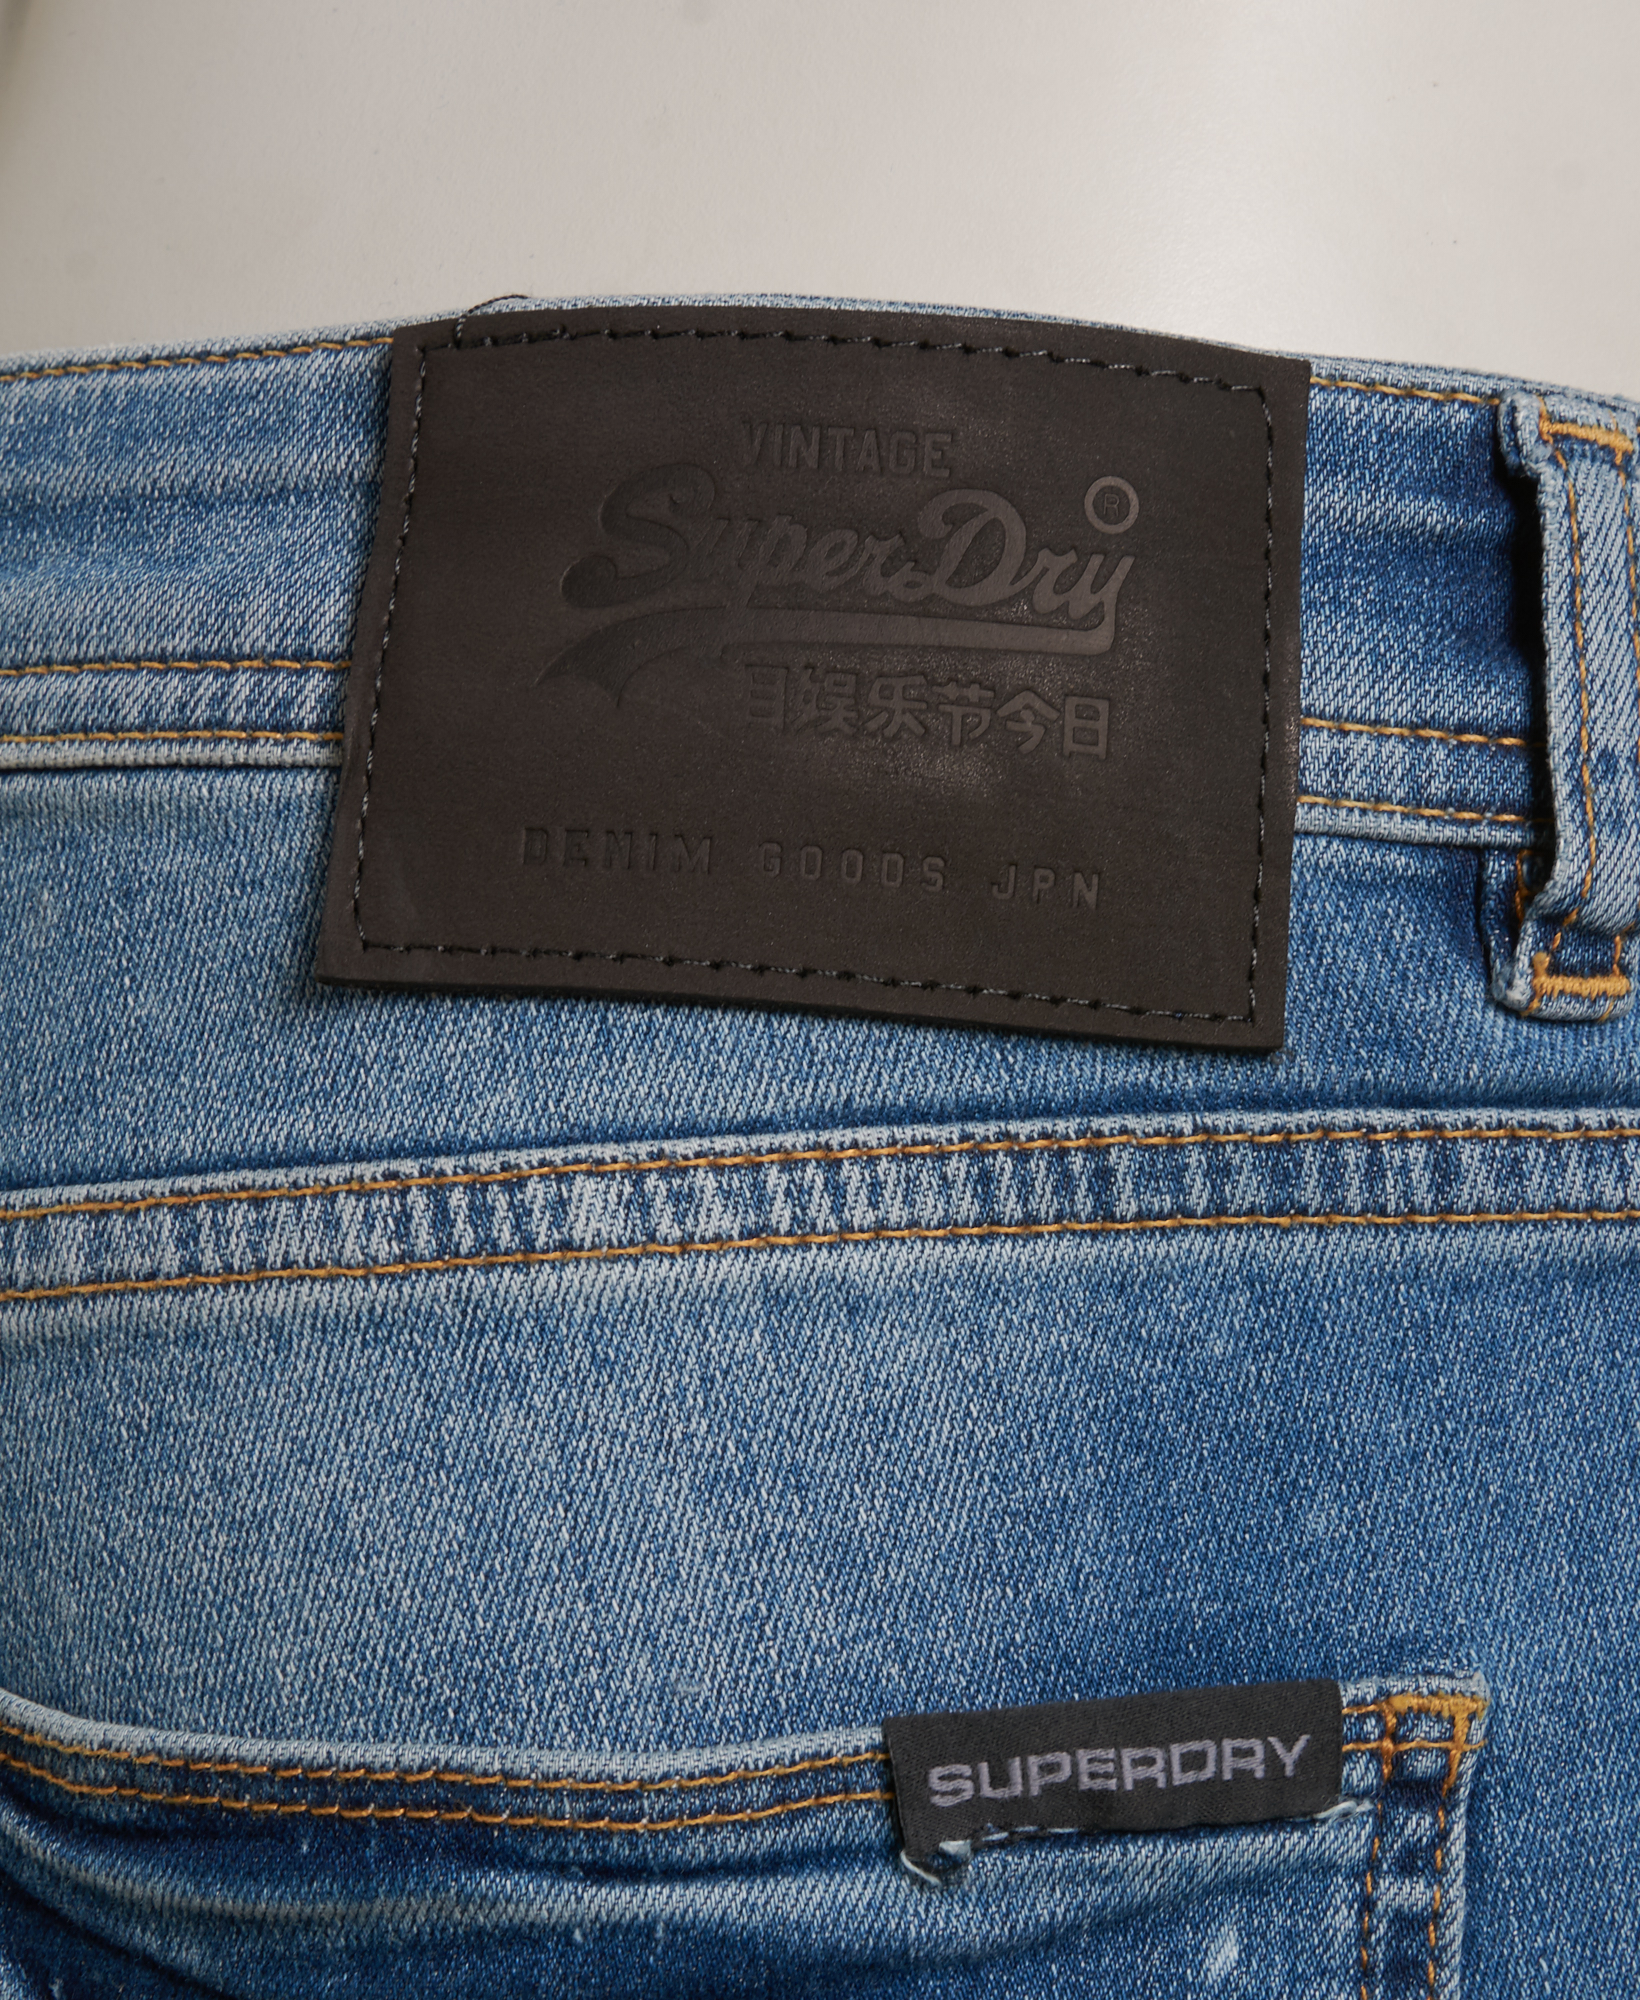 New Mens Superdry Factory Second Skinny Jeans Quays Blue Ripped